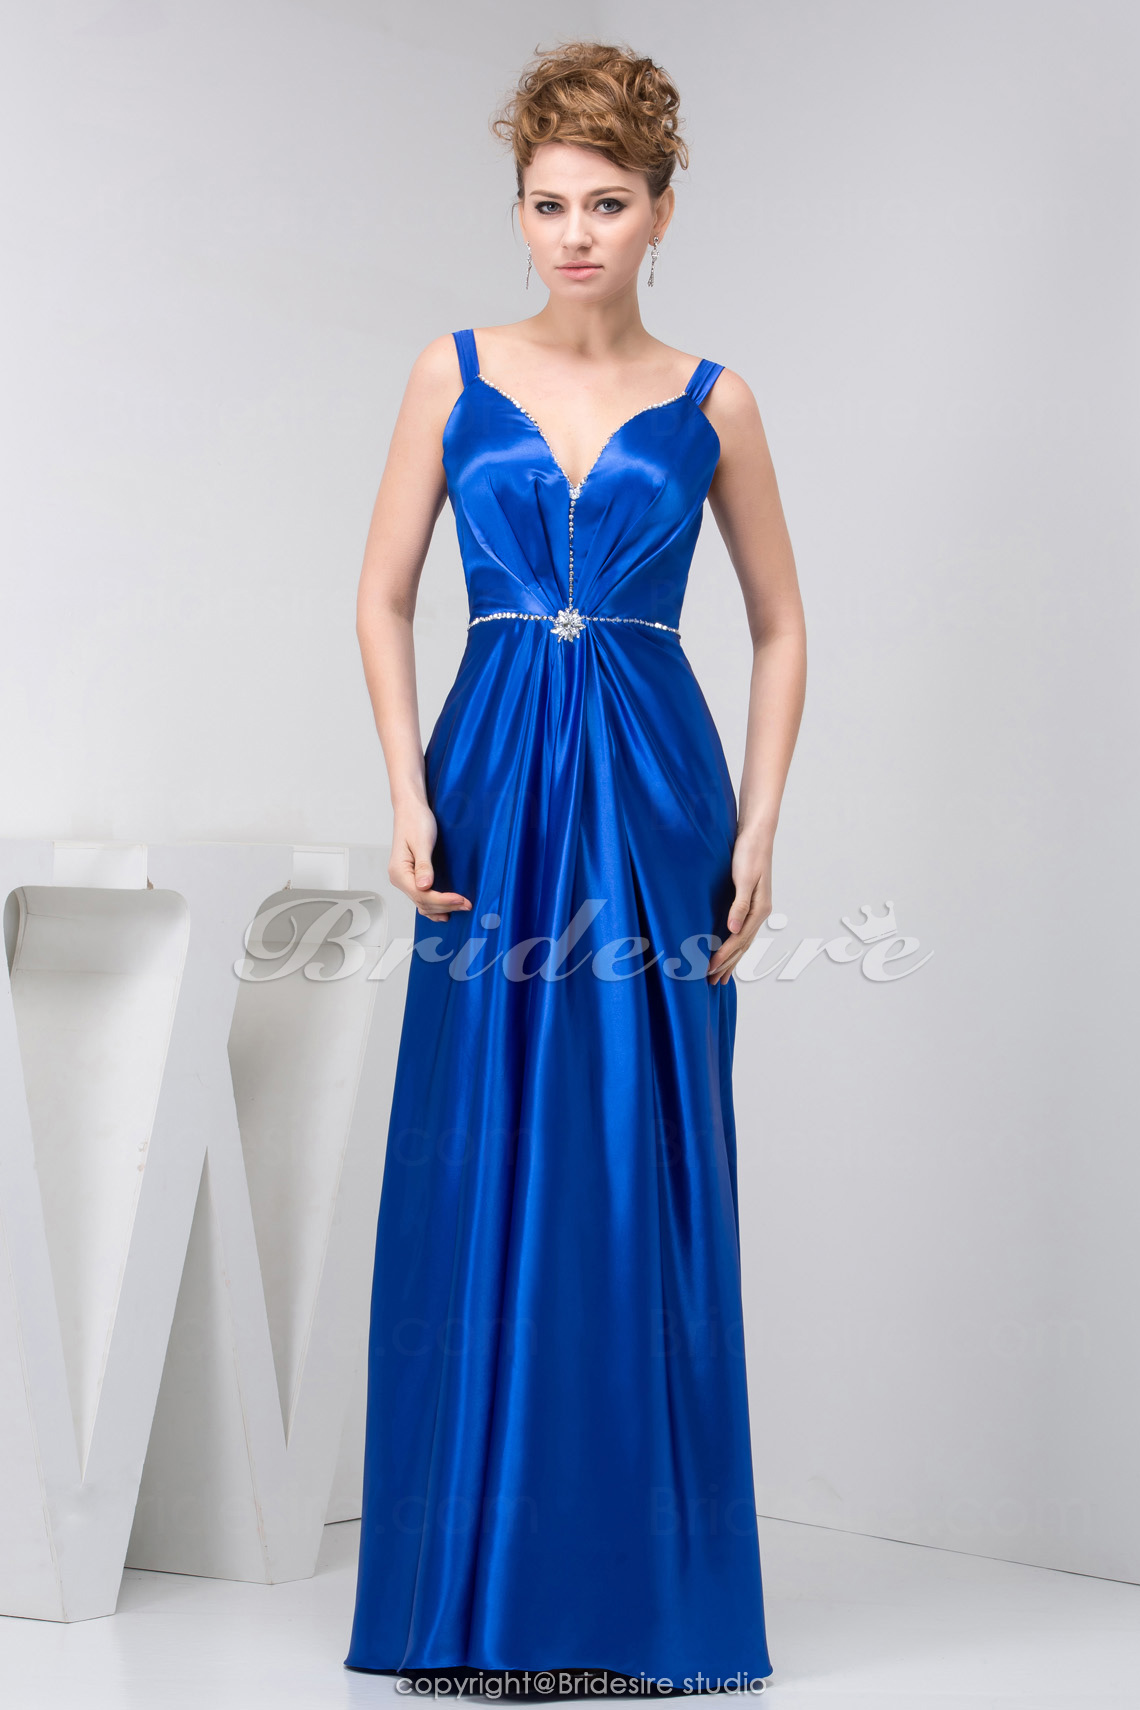 A-line Straps Floor-length Sleeveless Stretch Satin Mother of the Bride Dress